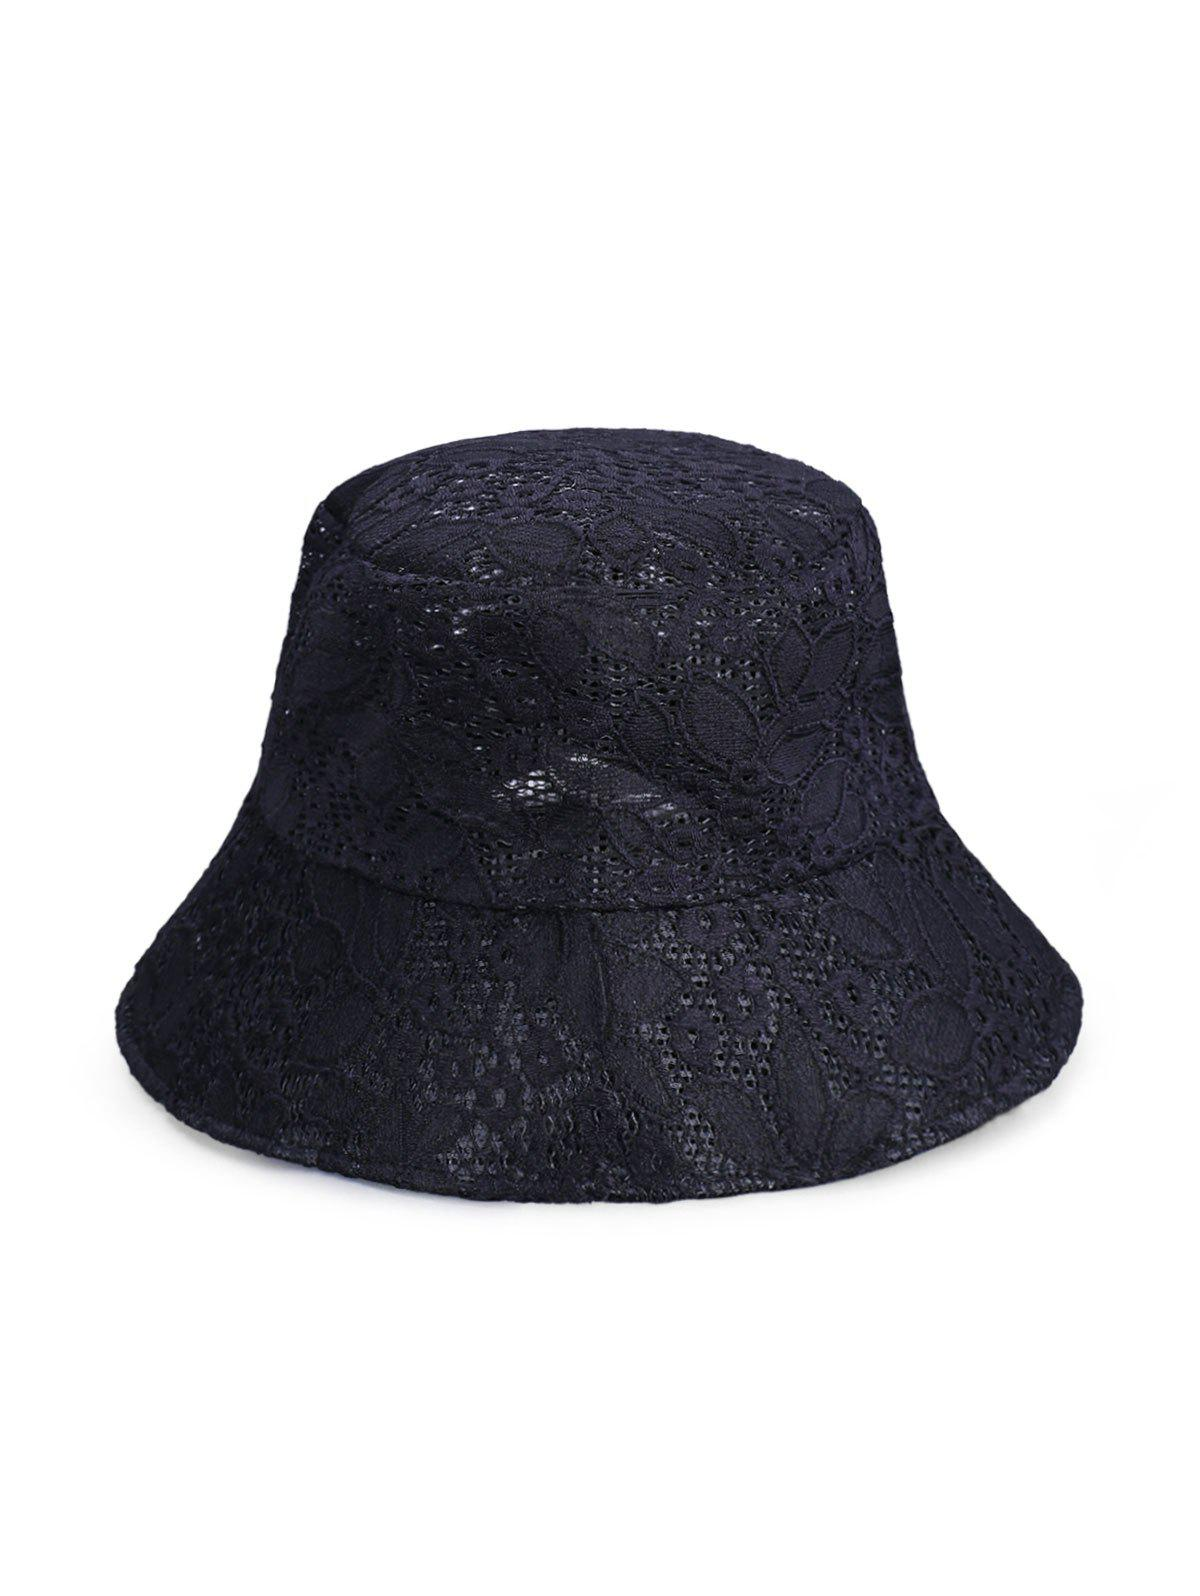 New Floral Pattern Lace Bucket Hat